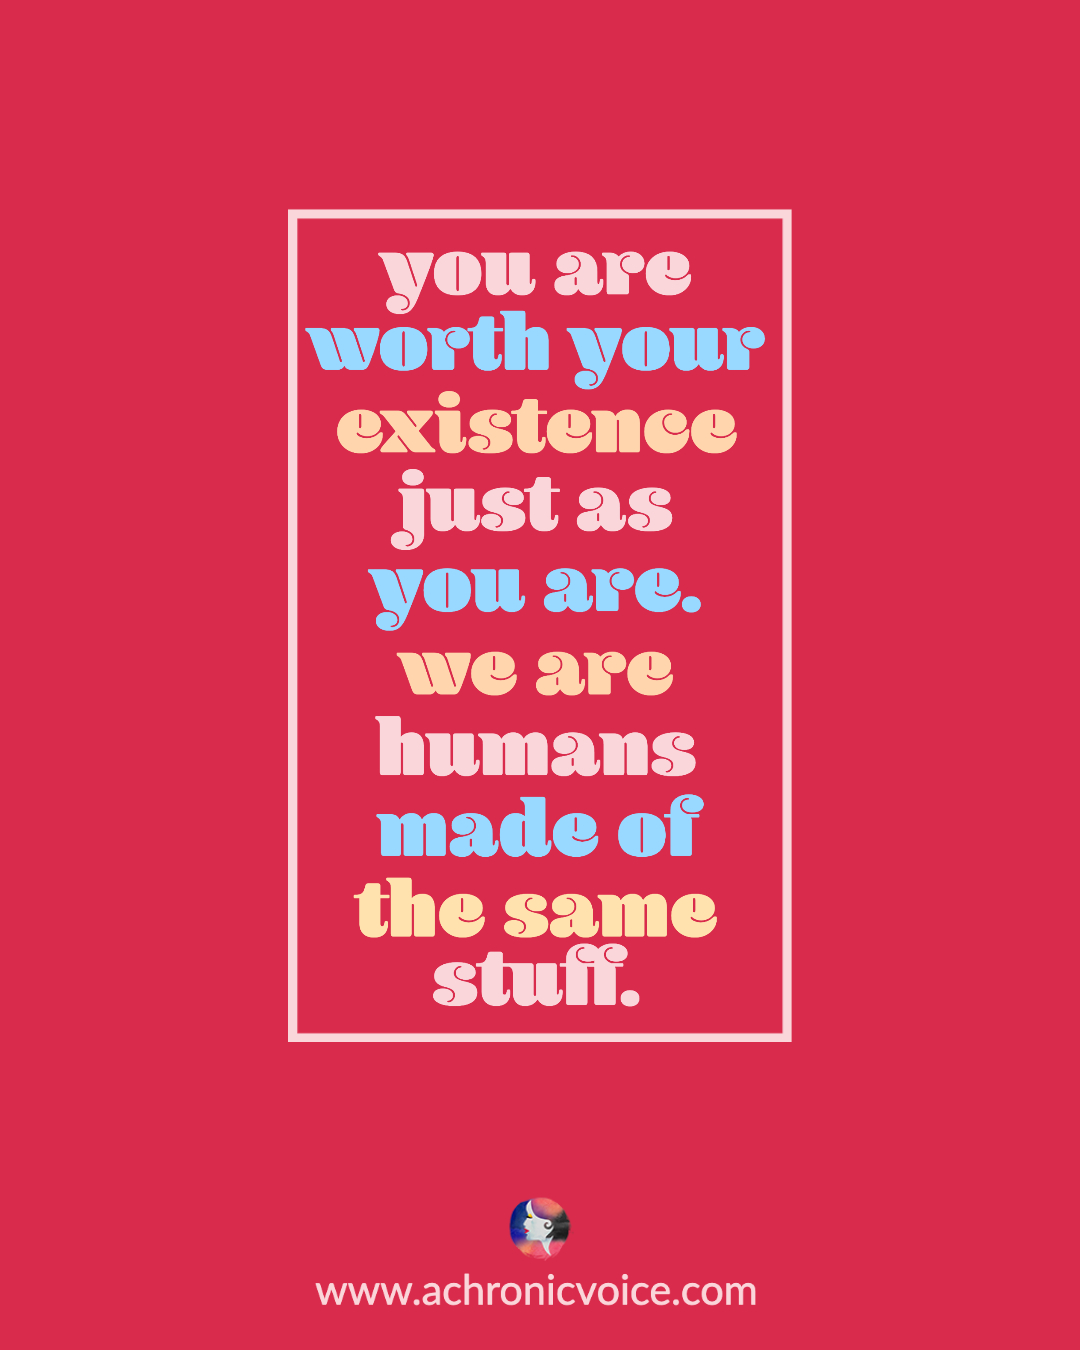 You are worth your existence just as you are. We are all humans made of the same stuff. | A Chronic Voice